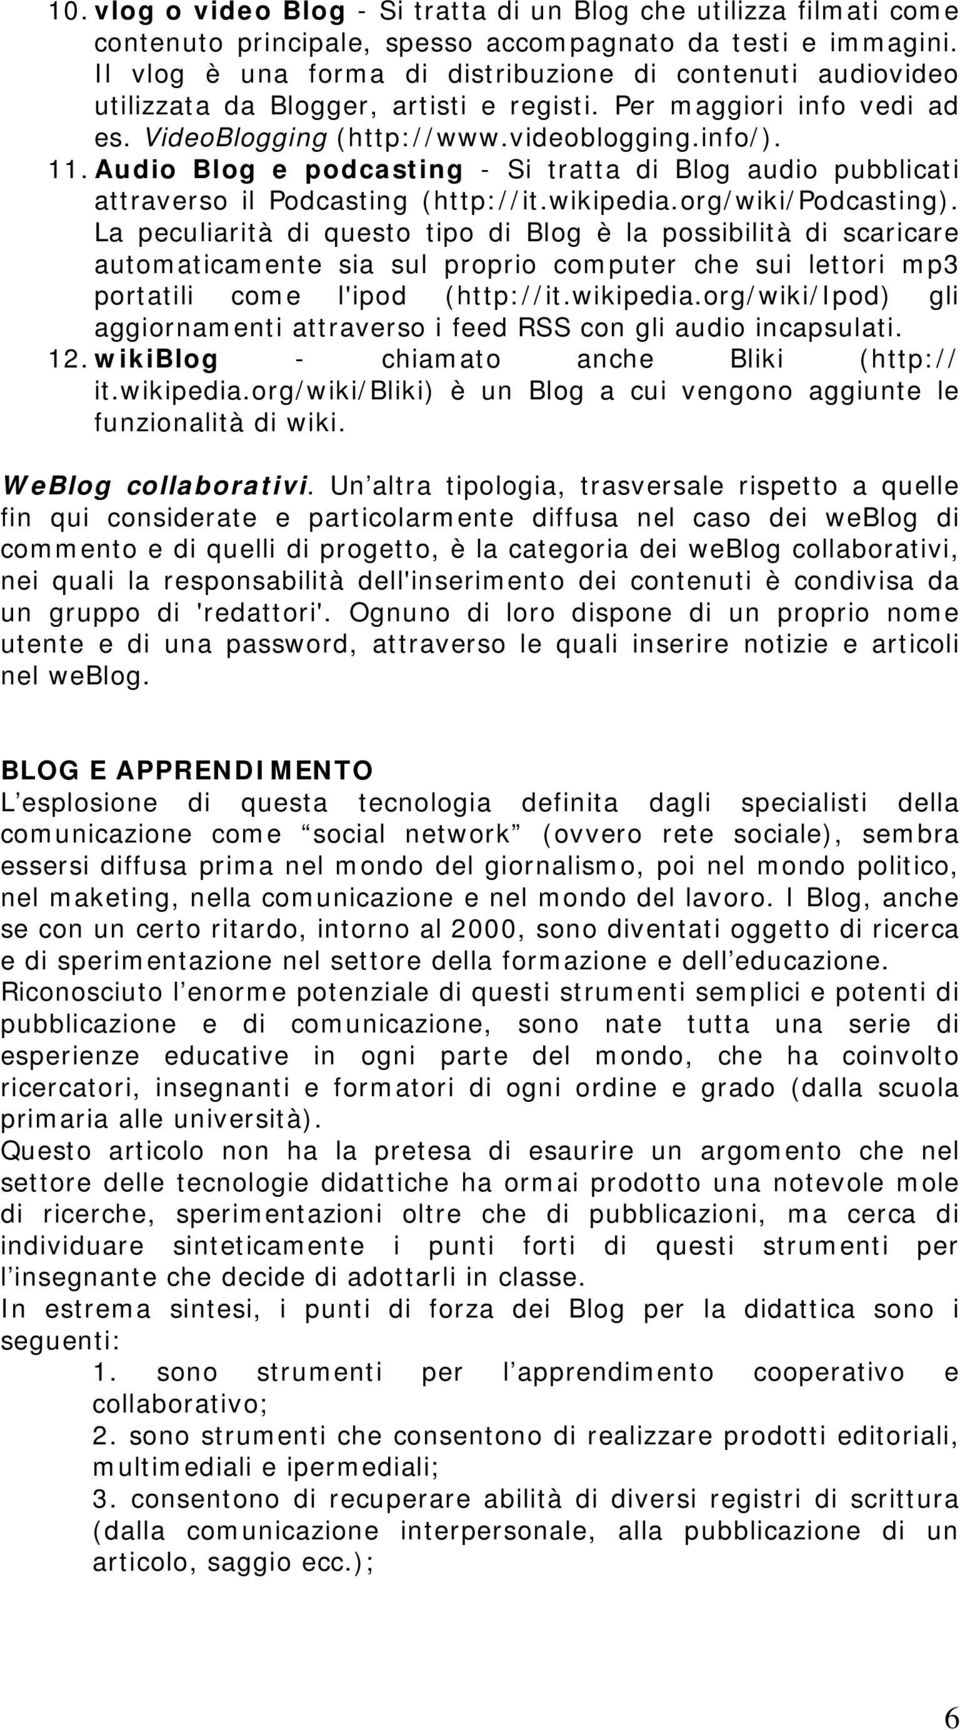 Audio Blog e podcasting - Si tratta di Blog audio pubblicati attraverso il Podcasting (http://it.wikipedia.org/wiki/podcasting).